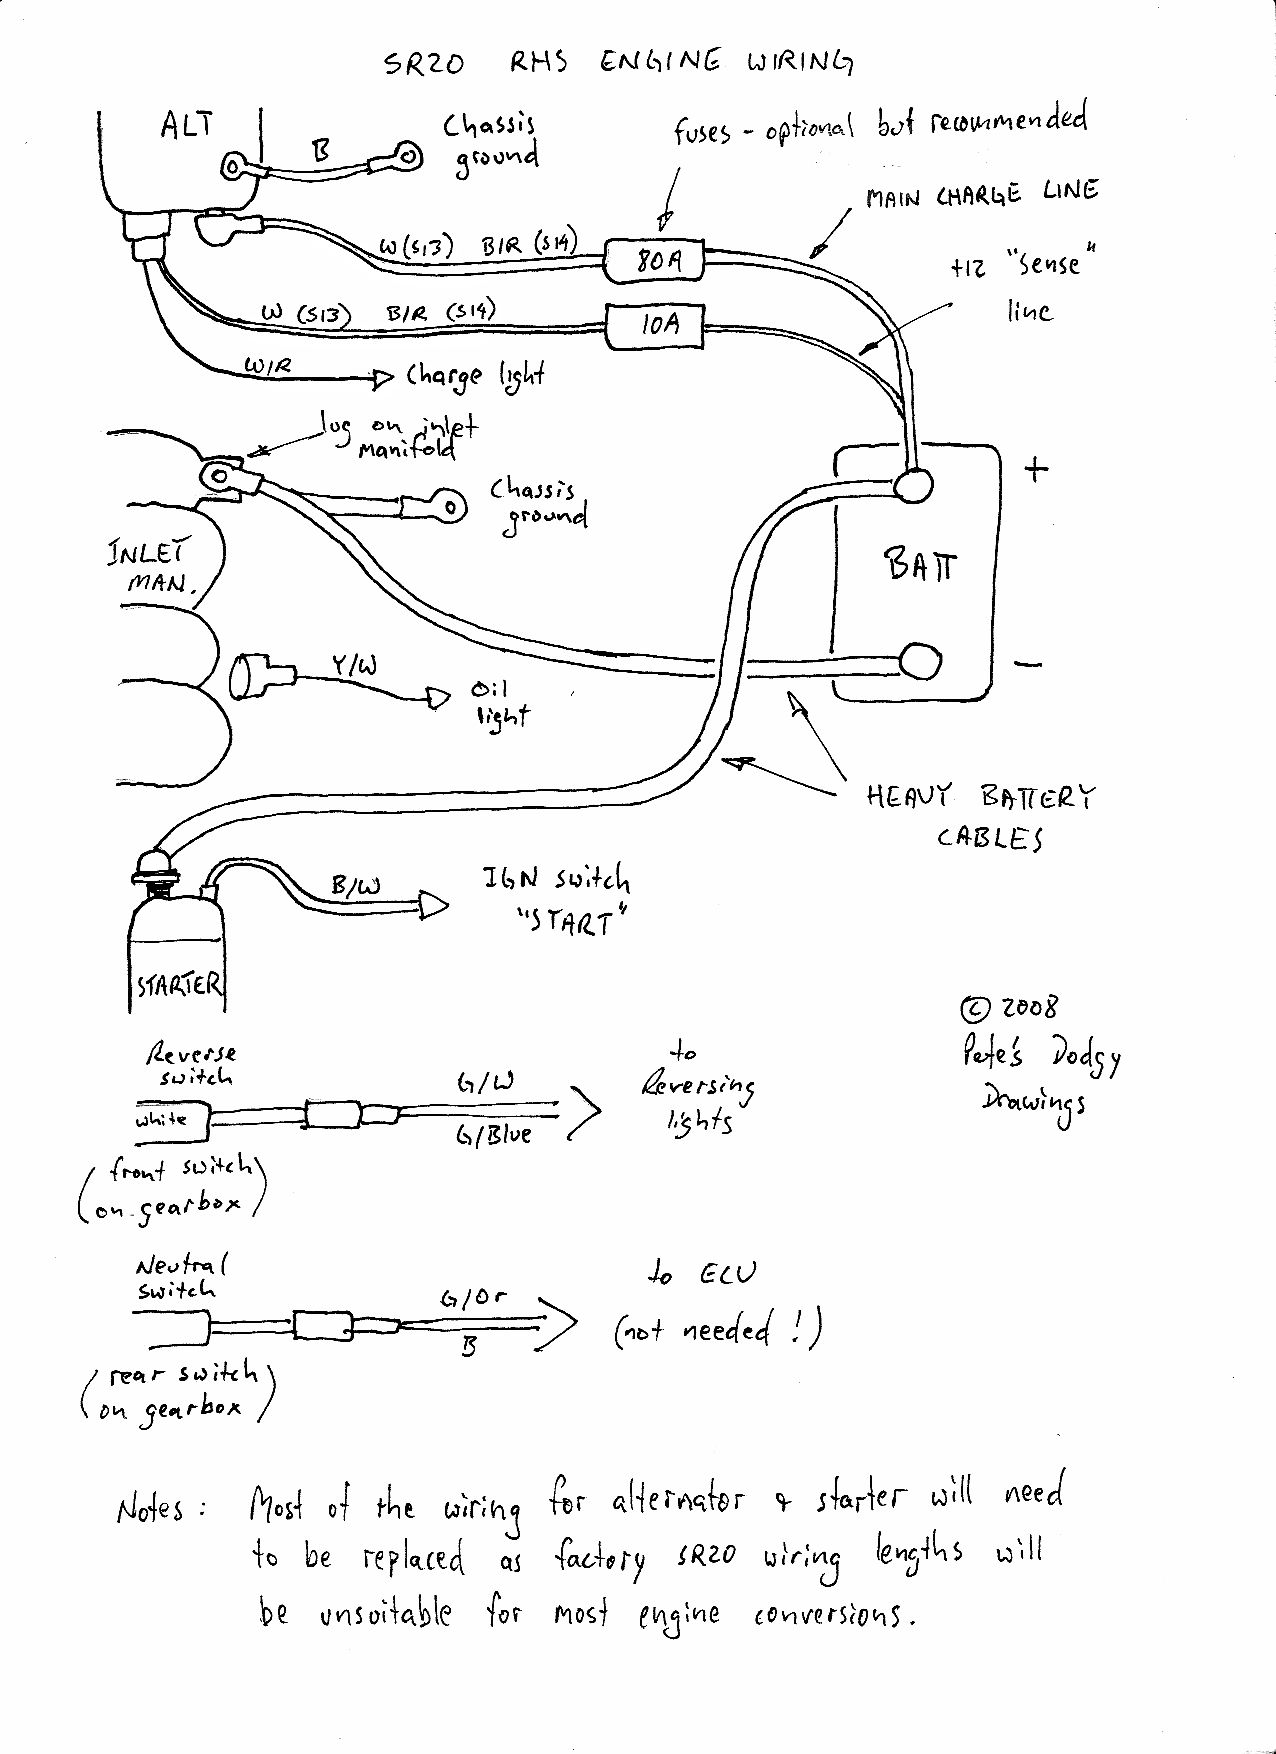 rhs_wiring sr20det wiring into 510 the 510 realm s14 sr20det wiring harness diagram at alyssarenee.co